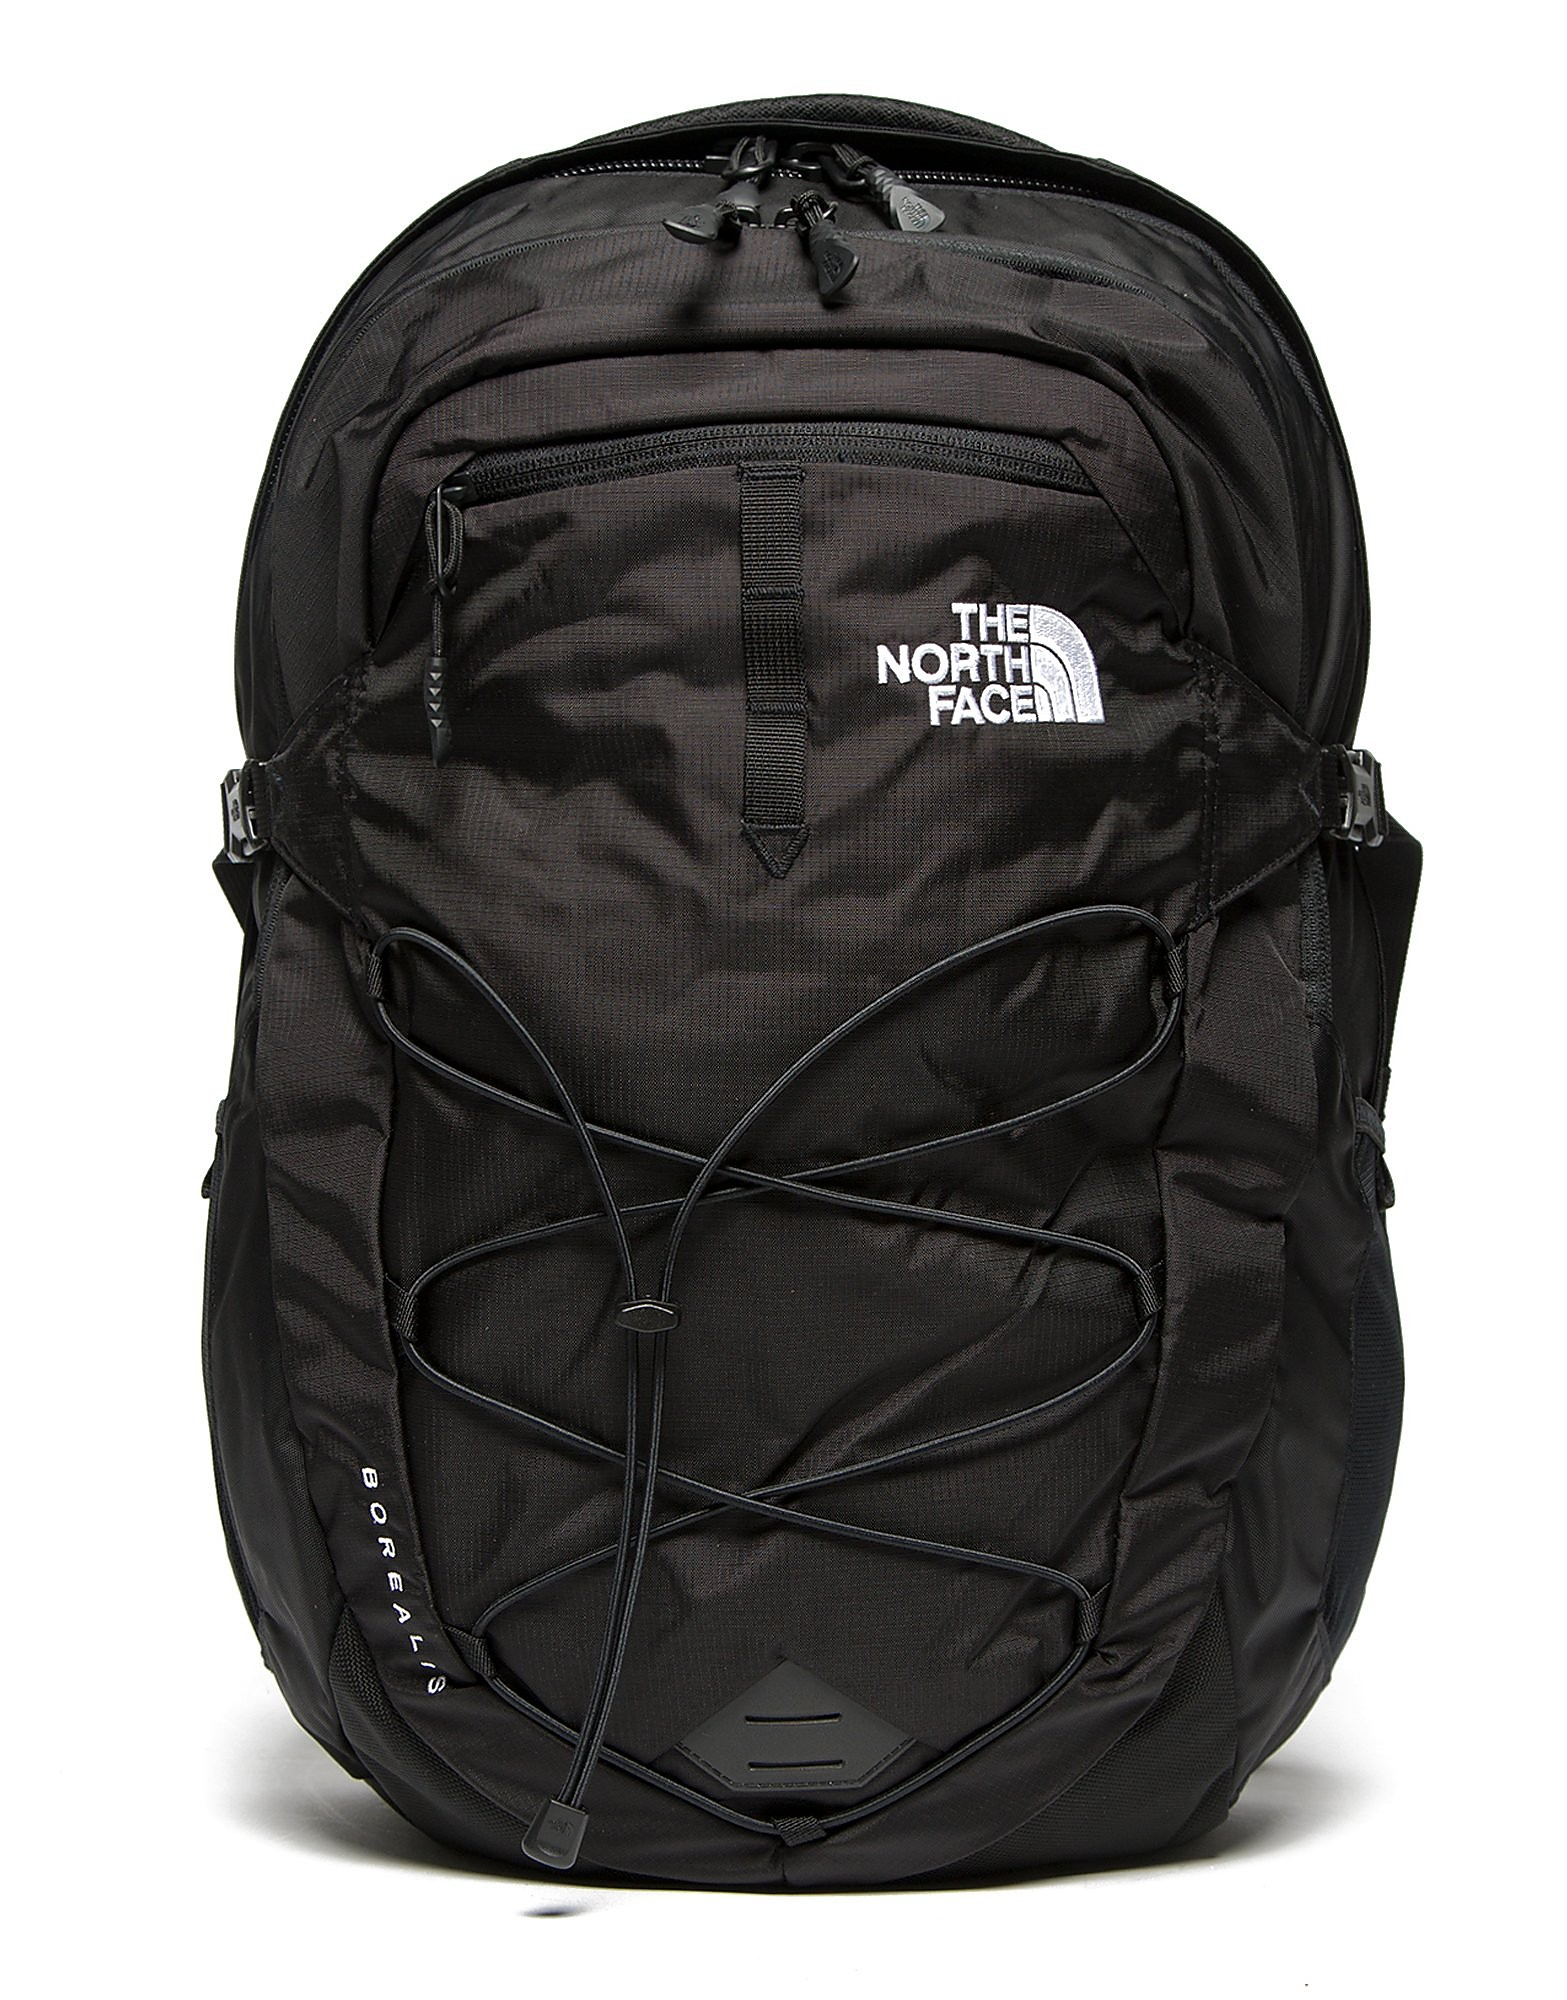 The North Face Sac à dos Borealis